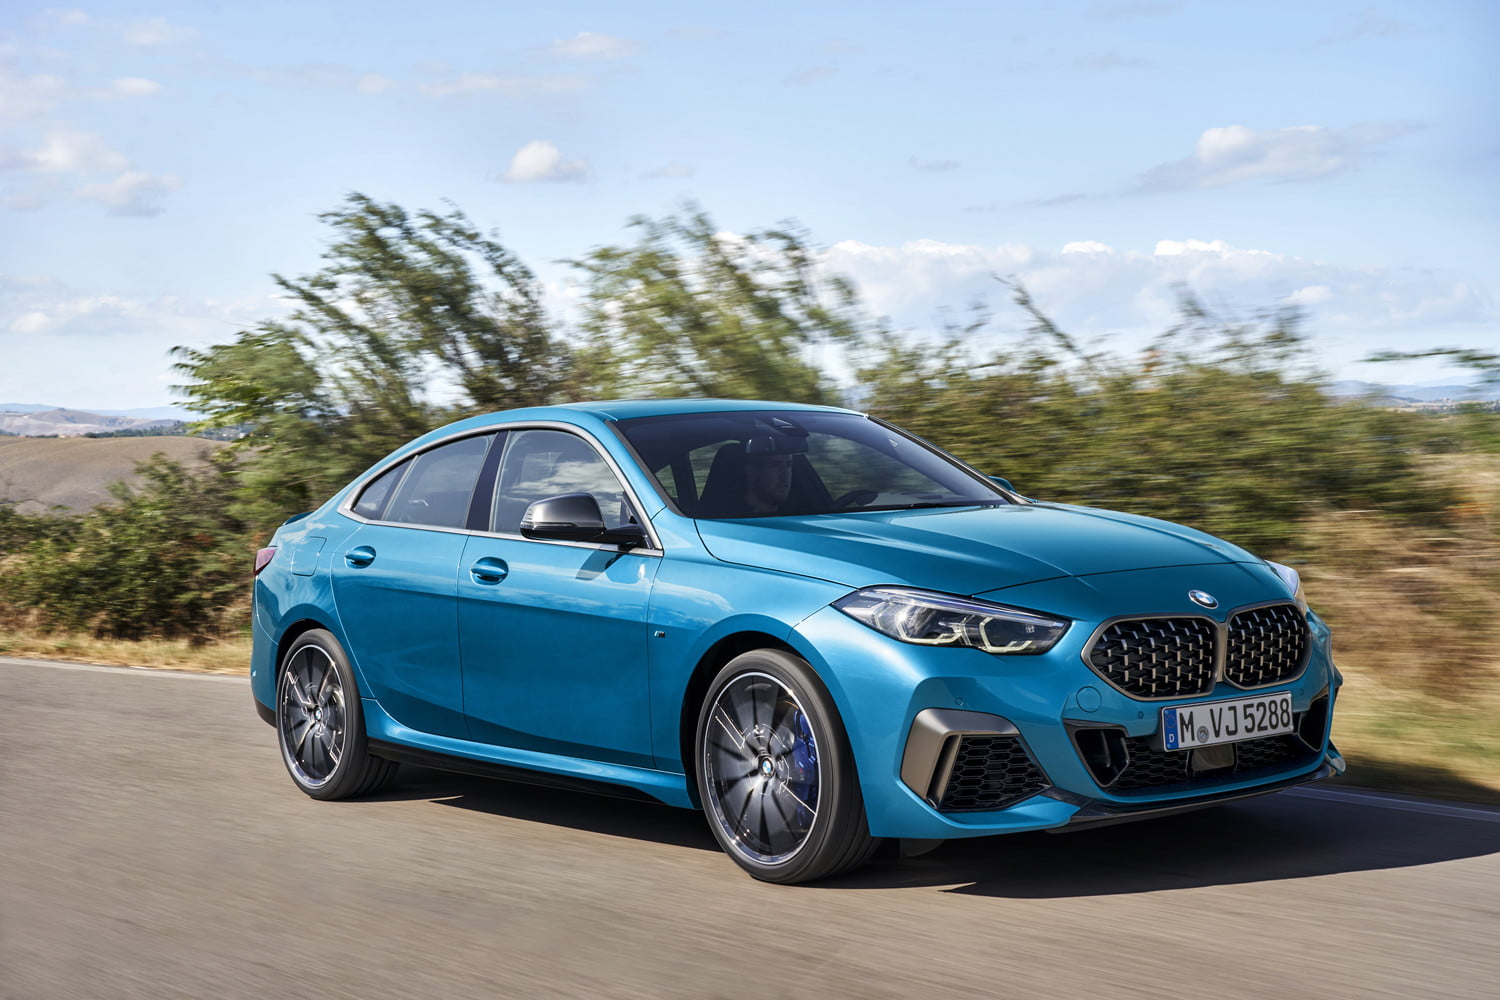 2020 bmw 228i m235i gran coupe unveiled as entry level sedans 2 series gc off 3